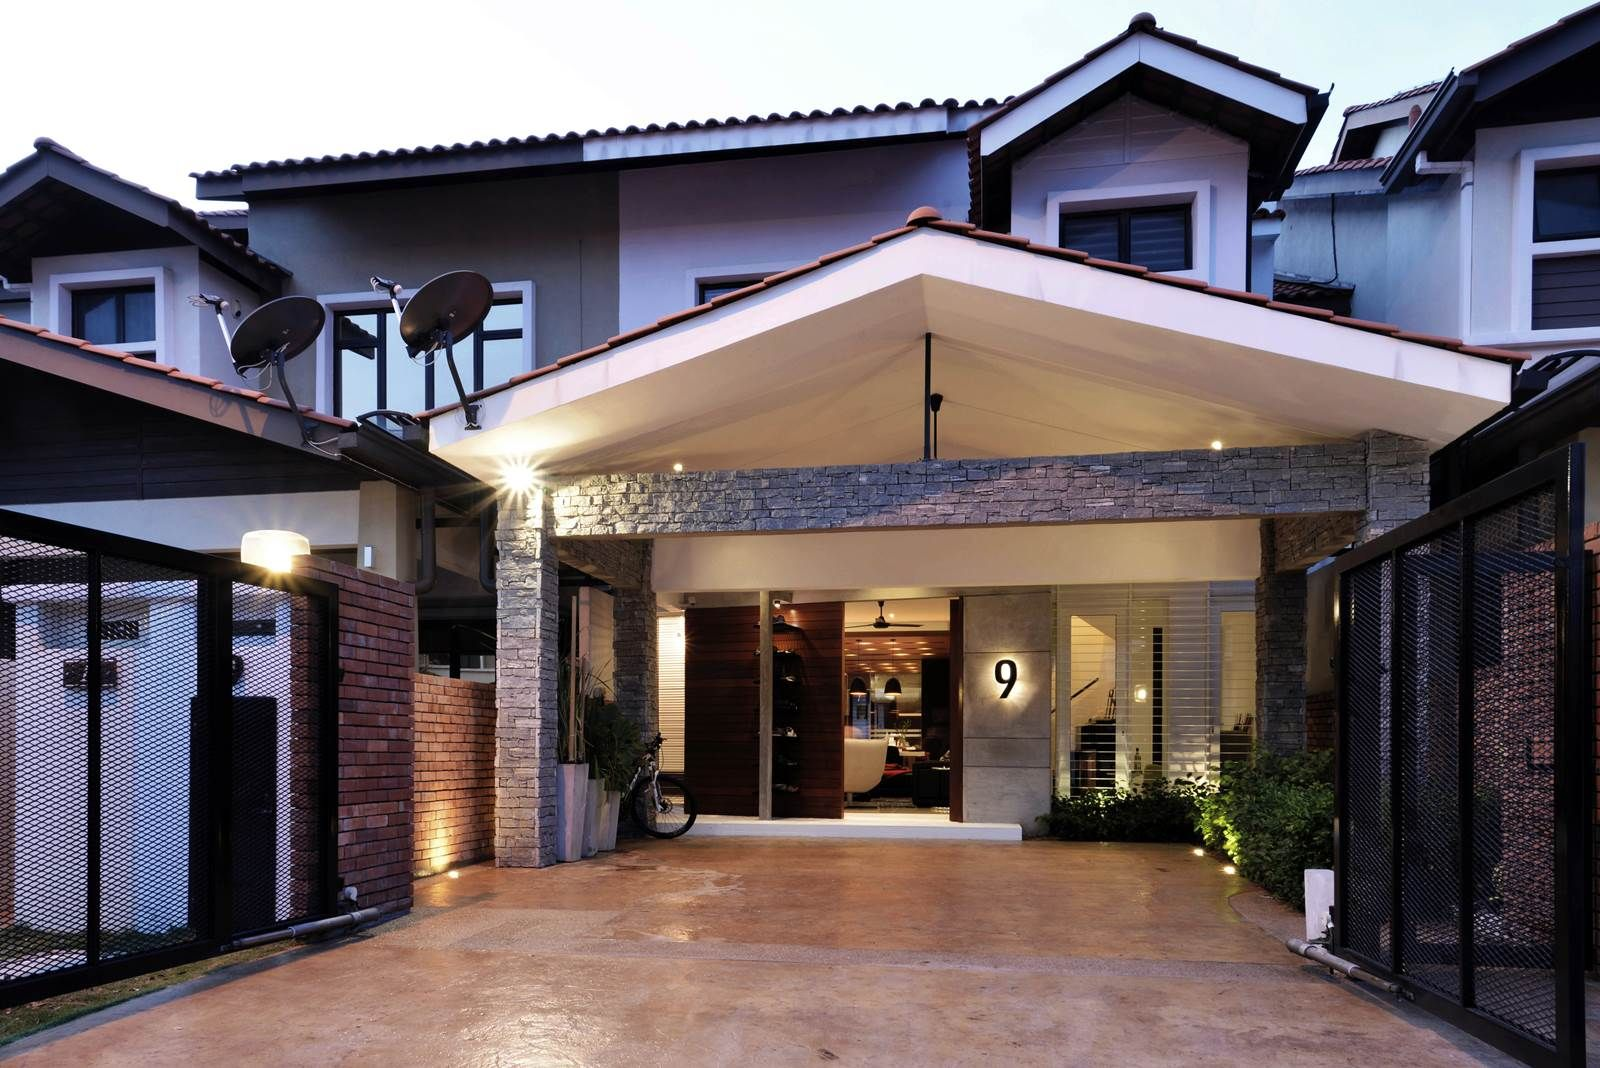 From a basic single storey terrace house into a modern 2 storey ...